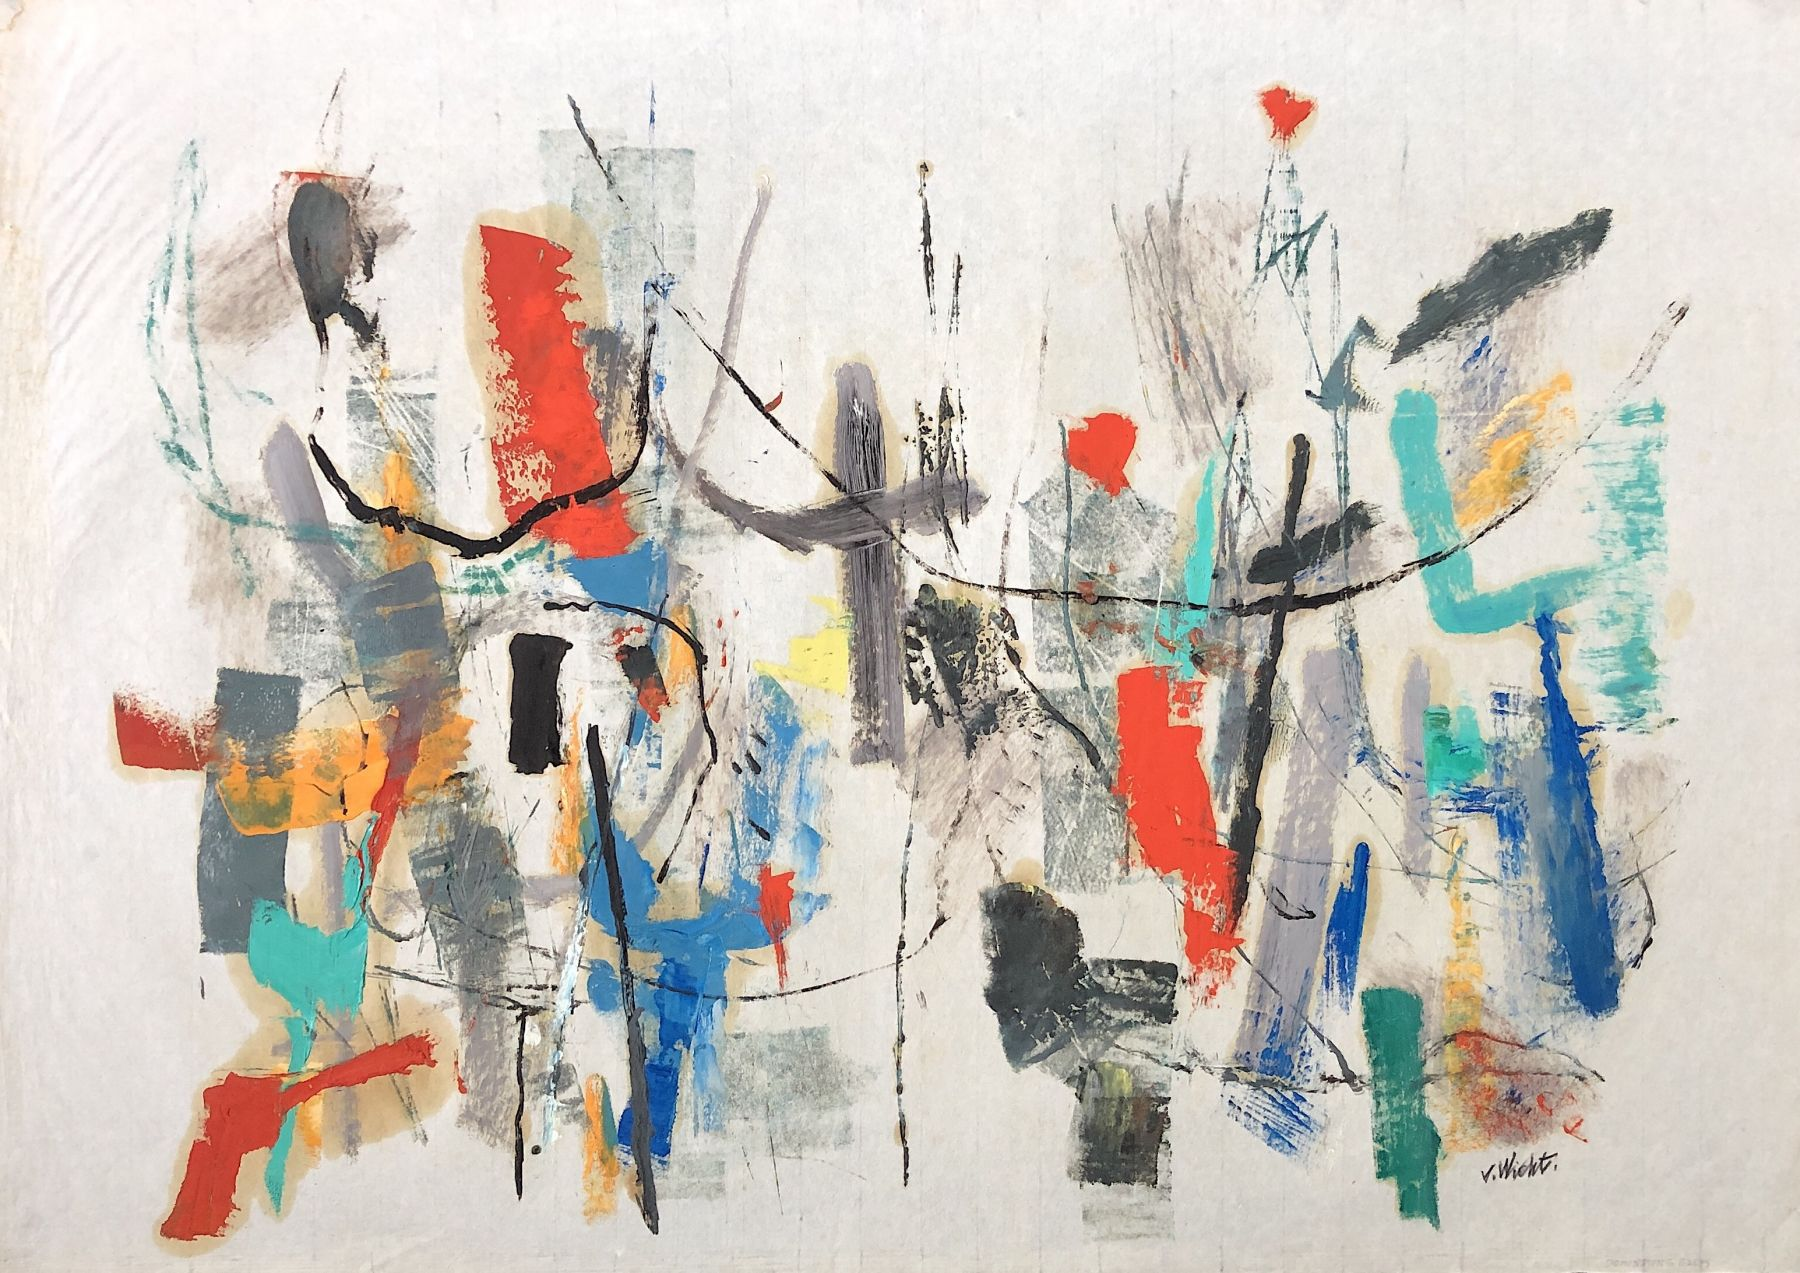 Sold untitled mixed media painting by John Von Wicht